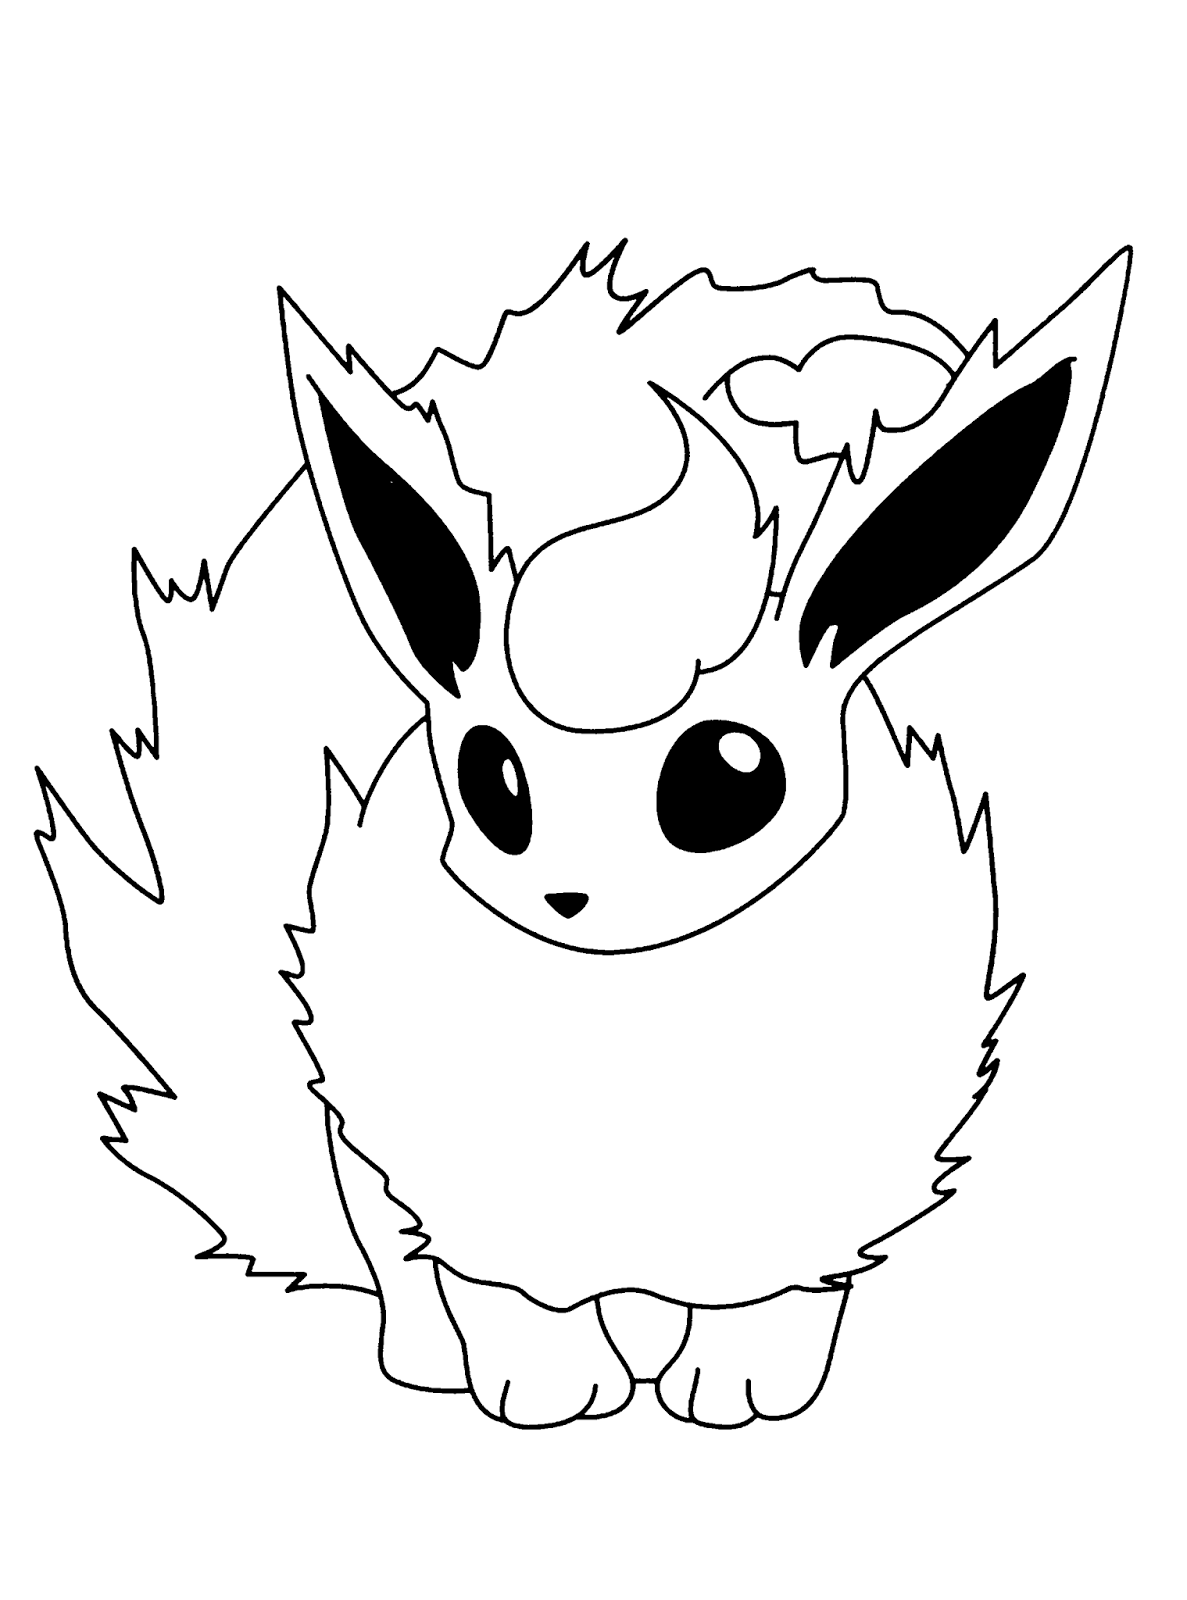 free pokemon printable coloring pages eevee coloring pages printable free pokemon coloring pages coloring printable pages free pokemon